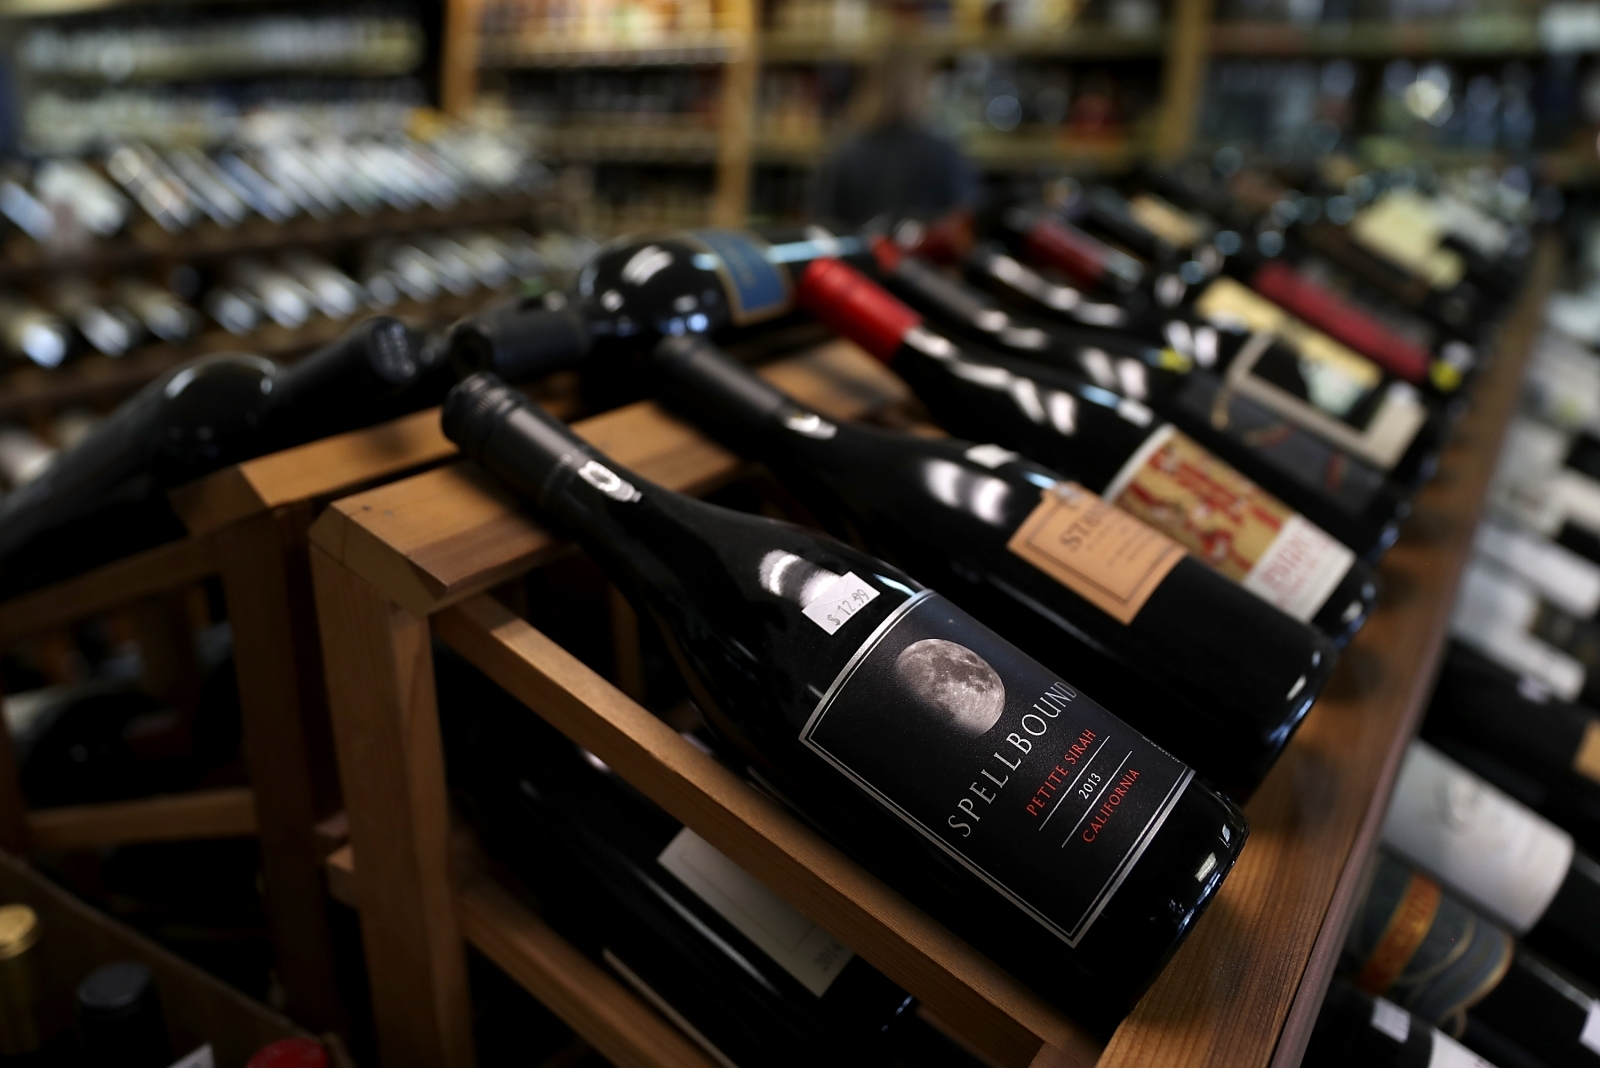 Wine bottles Getty Images & In the red: Goldman Sachs co-president had $1.2m worth of rare wine ...